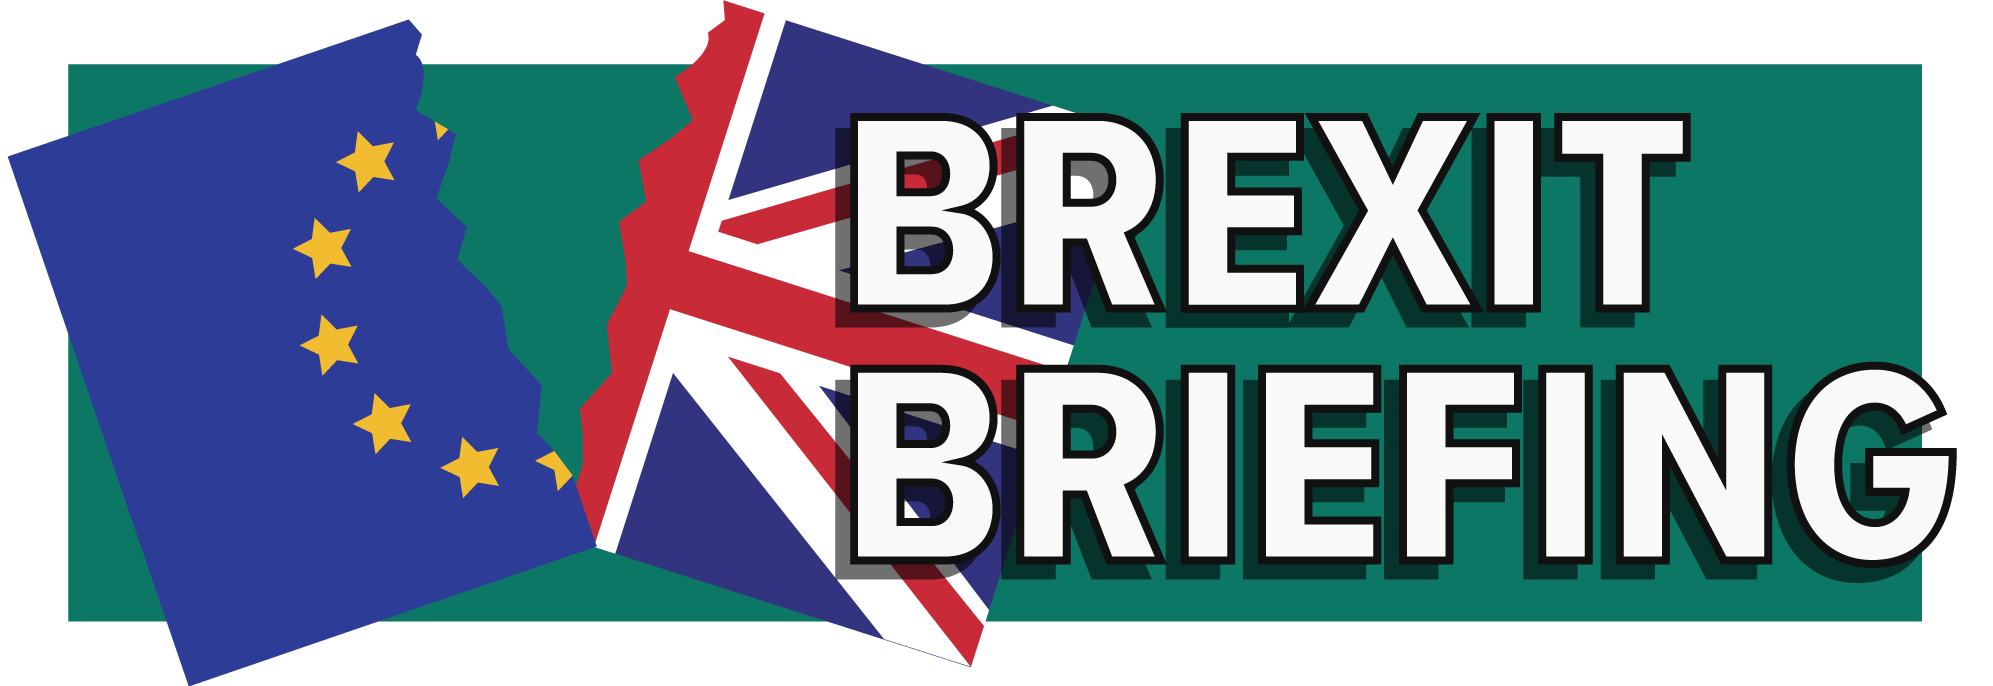 Brexit Briefing: Michael Fish, Apologetic Experts and